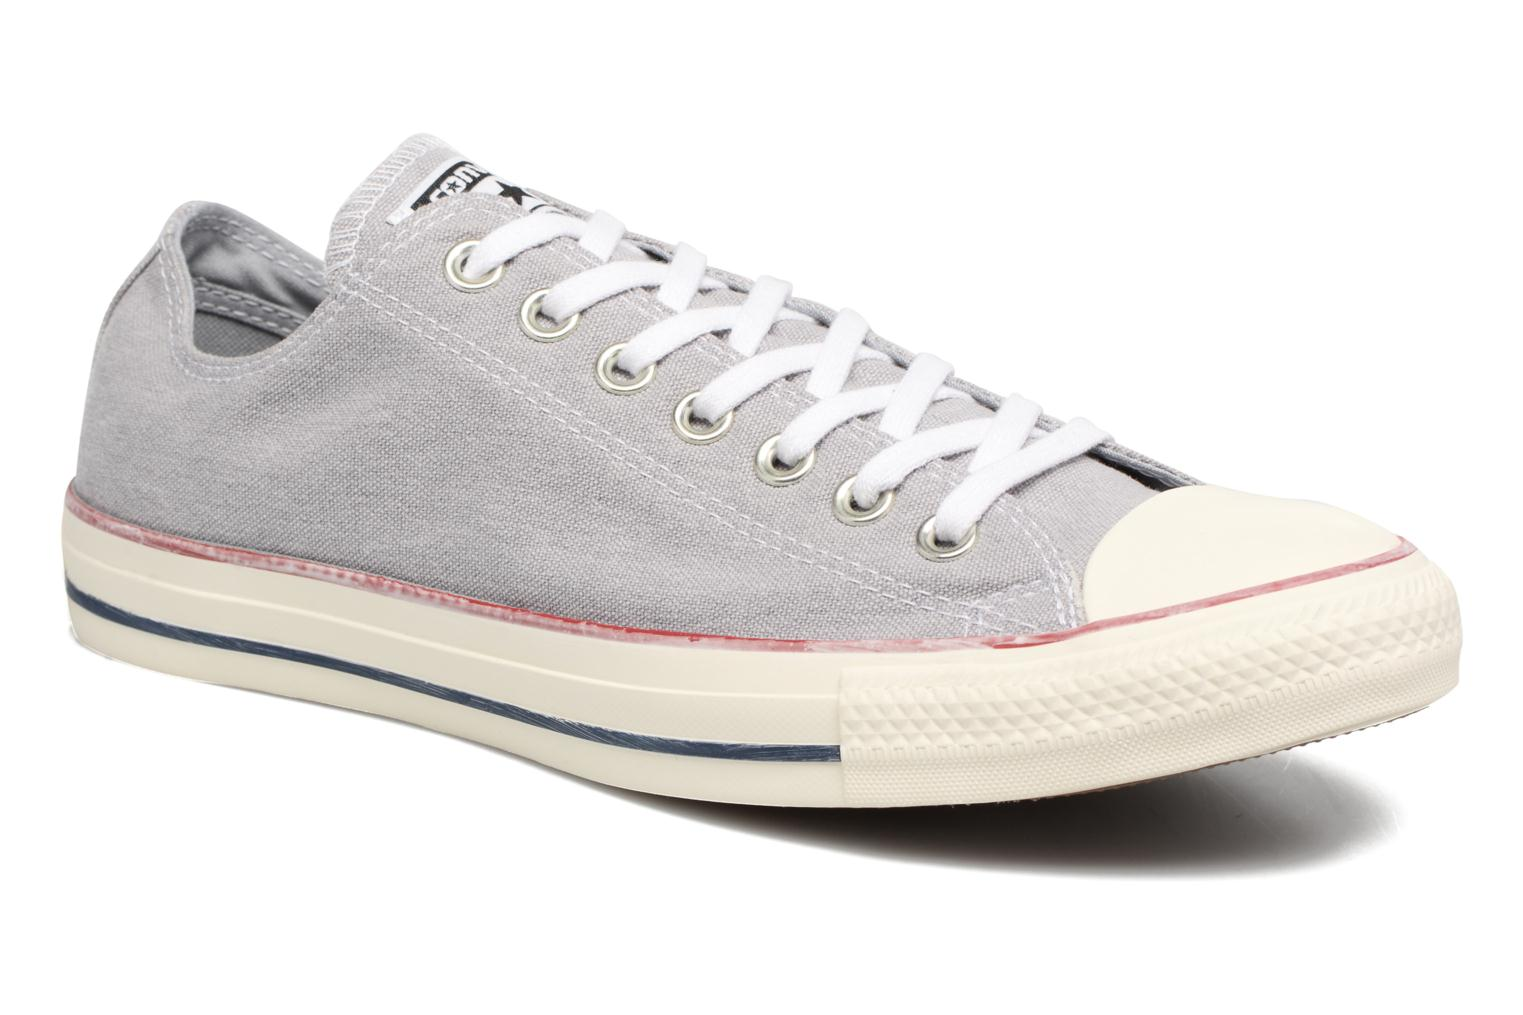 converse ct all star ox velcro trainers